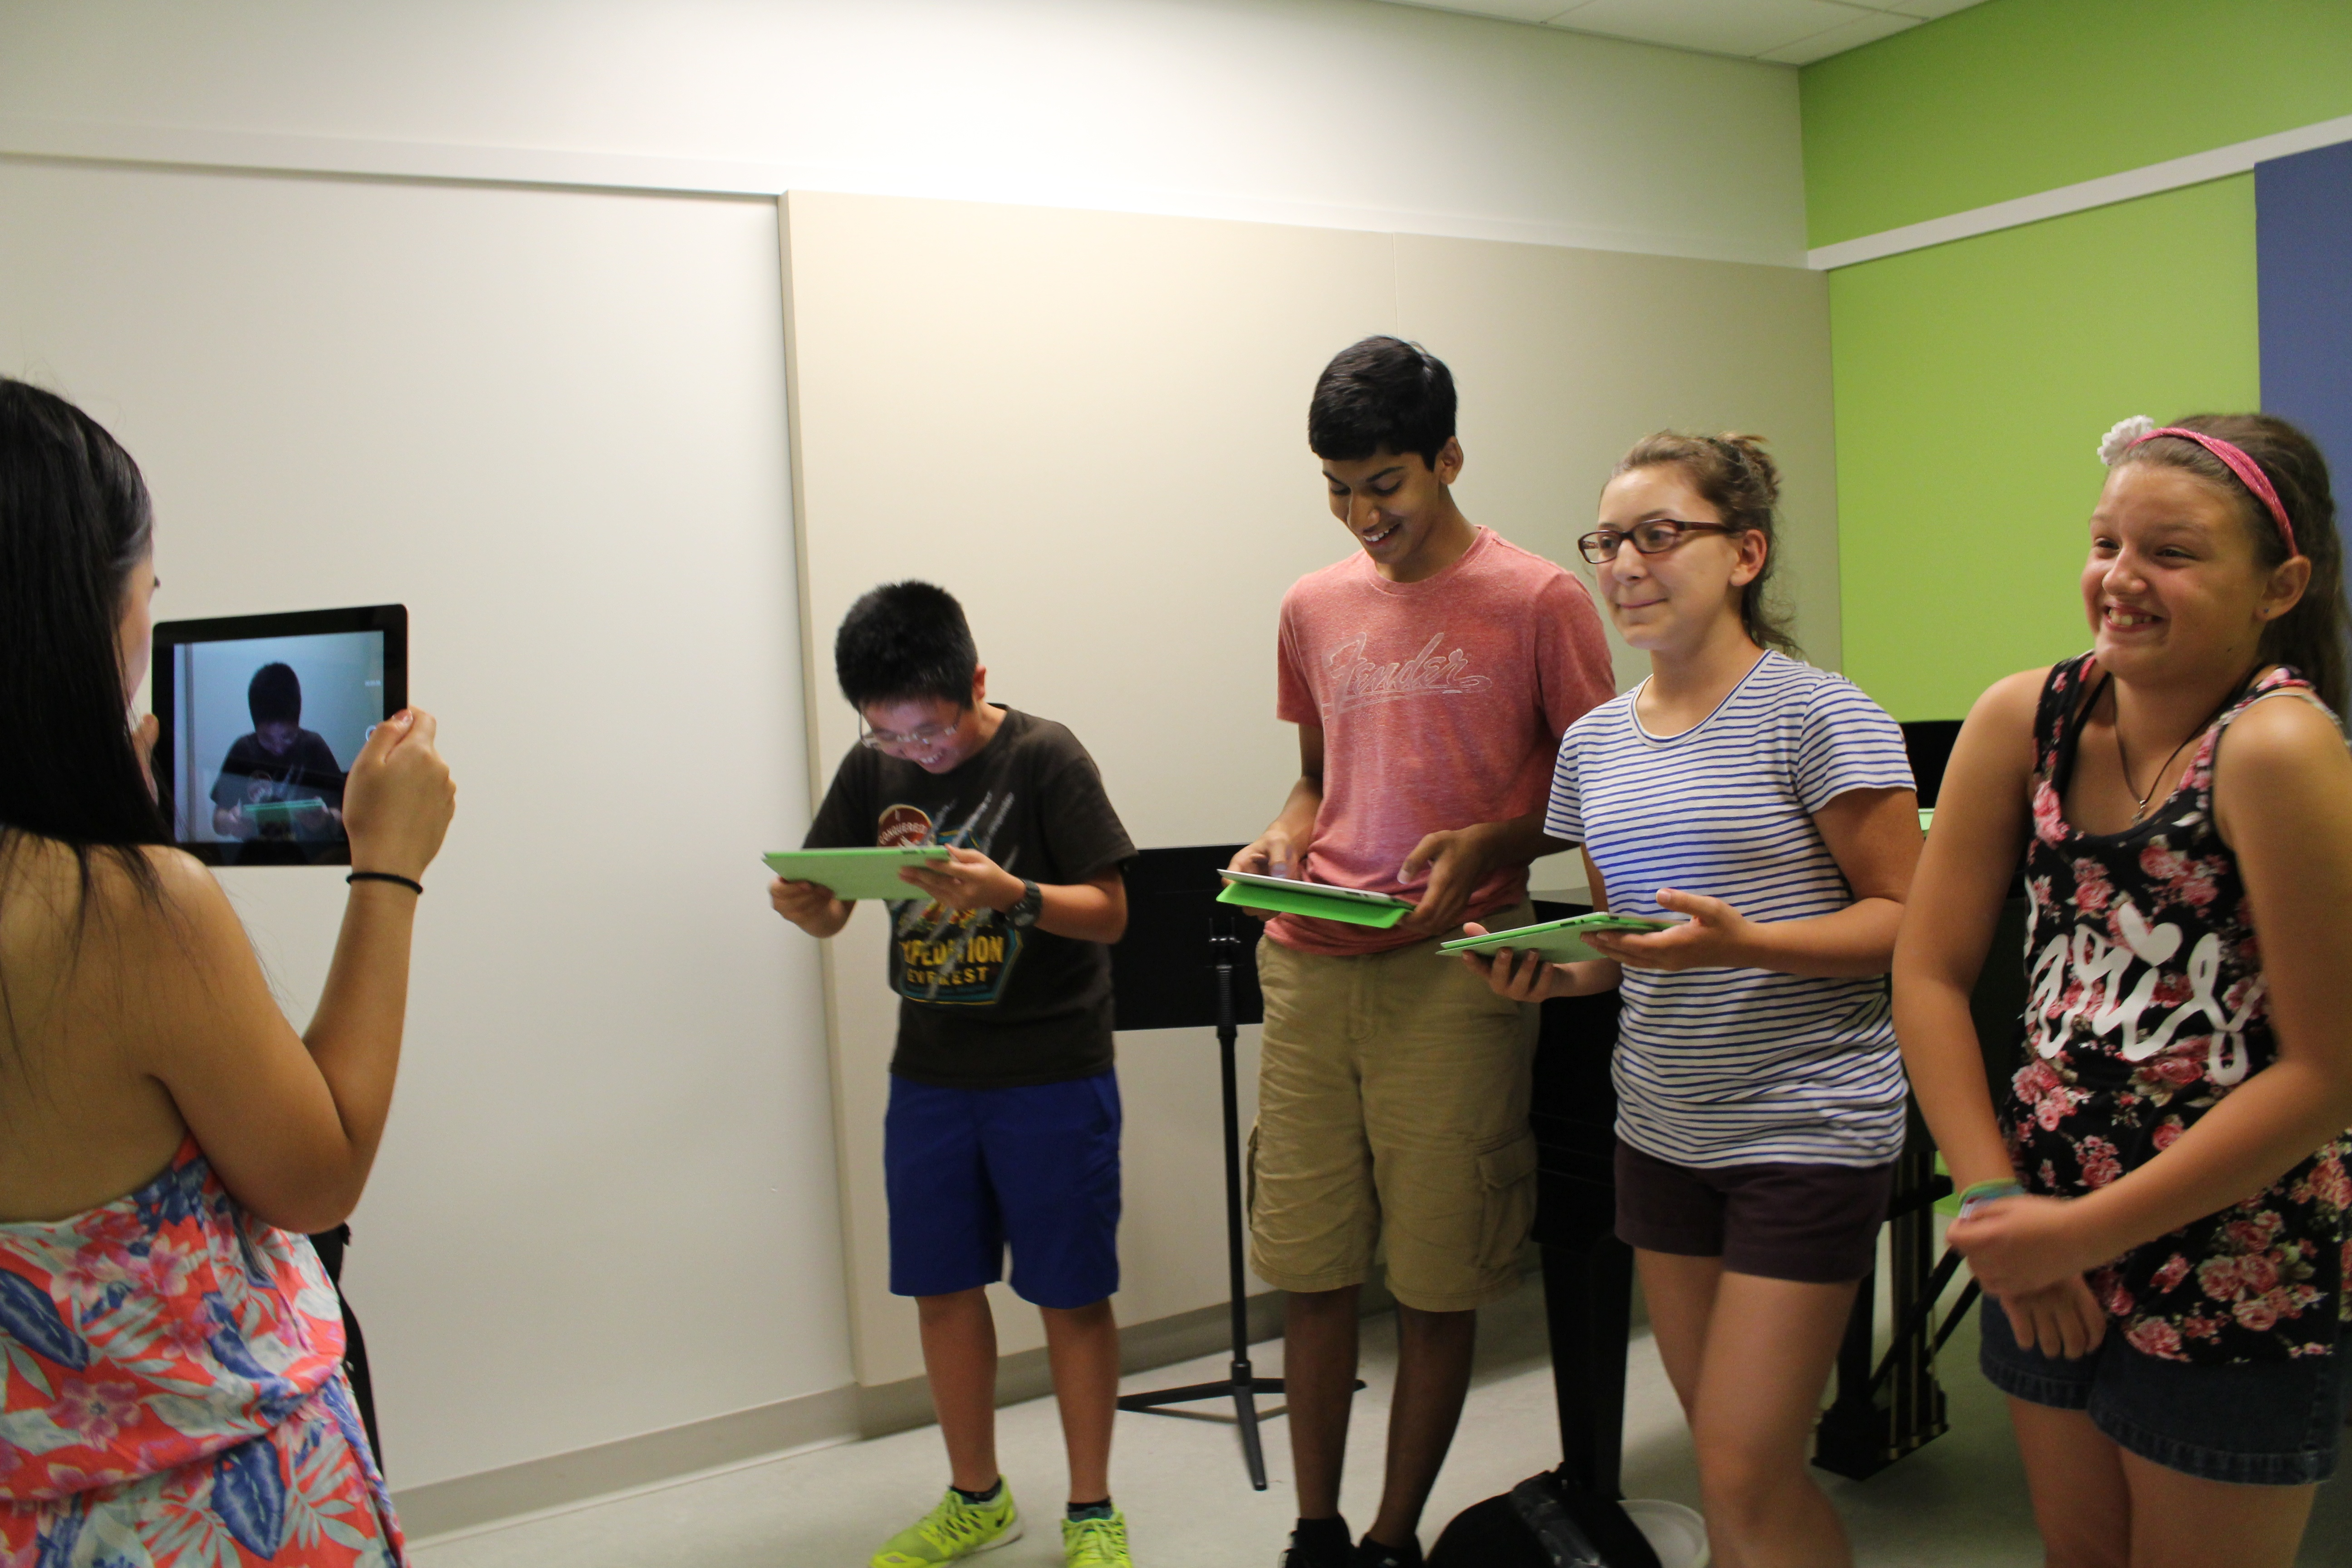 A group of students record a commerical promoting a device they invented at the Experimentory.